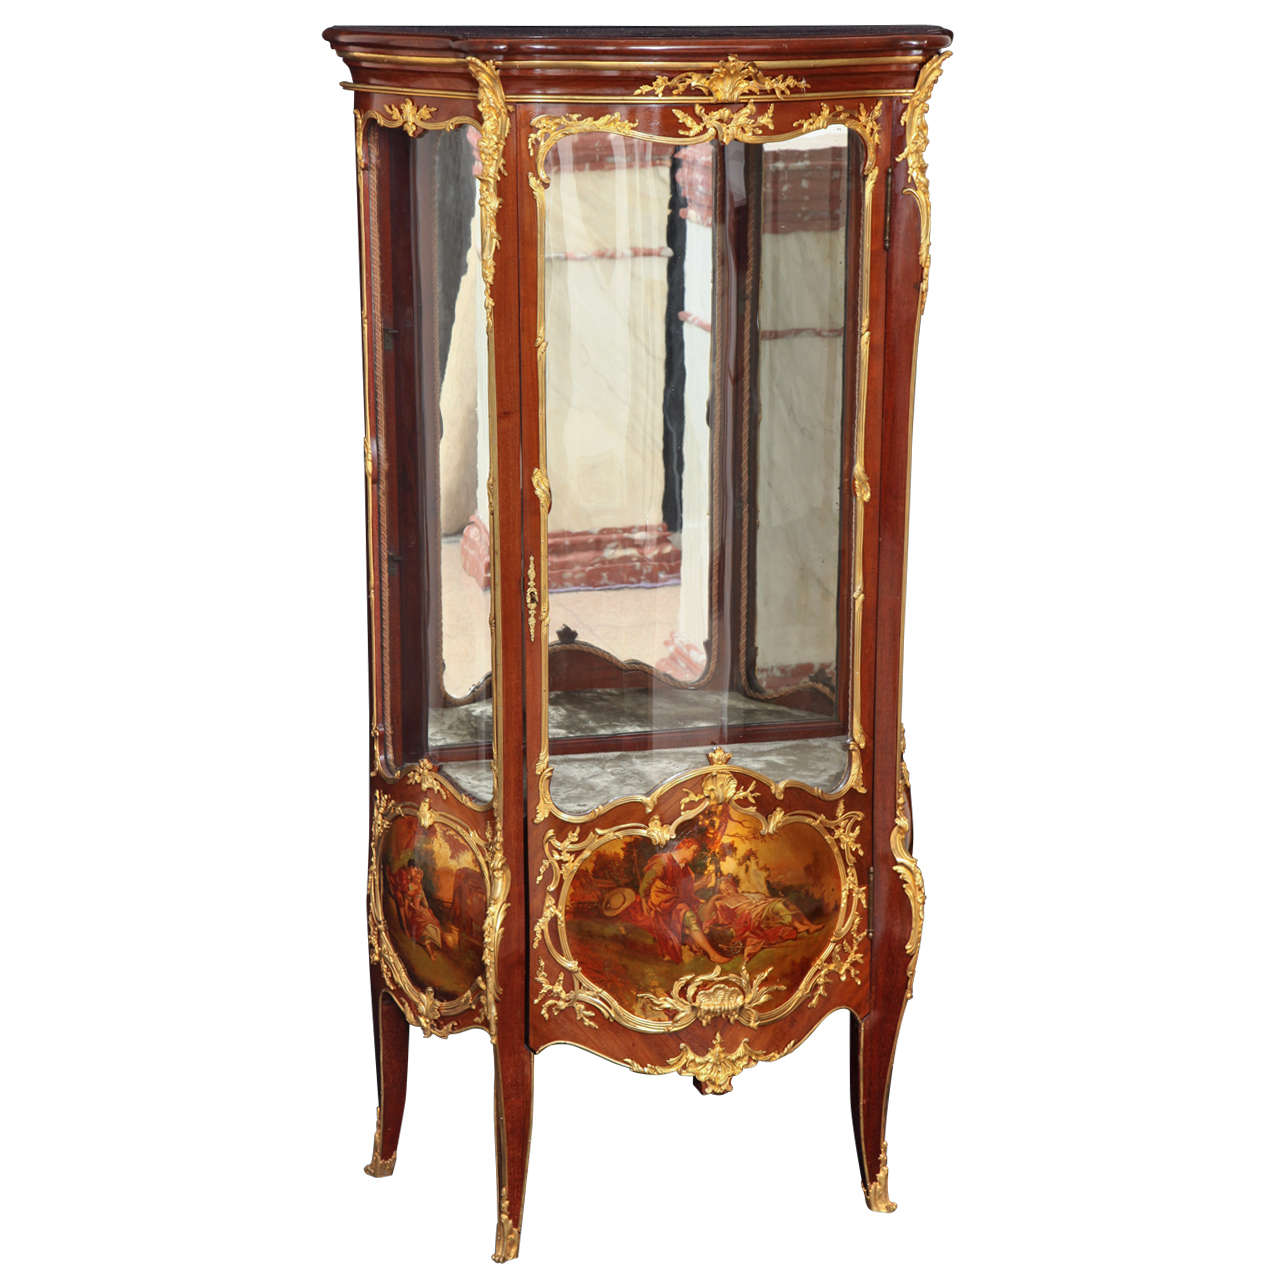 an antique french louis xv style vernis martin ormolu mounted vitrine for sale at 1stdibs. Black Bedroom Furniture Sets. Home Design Ideas